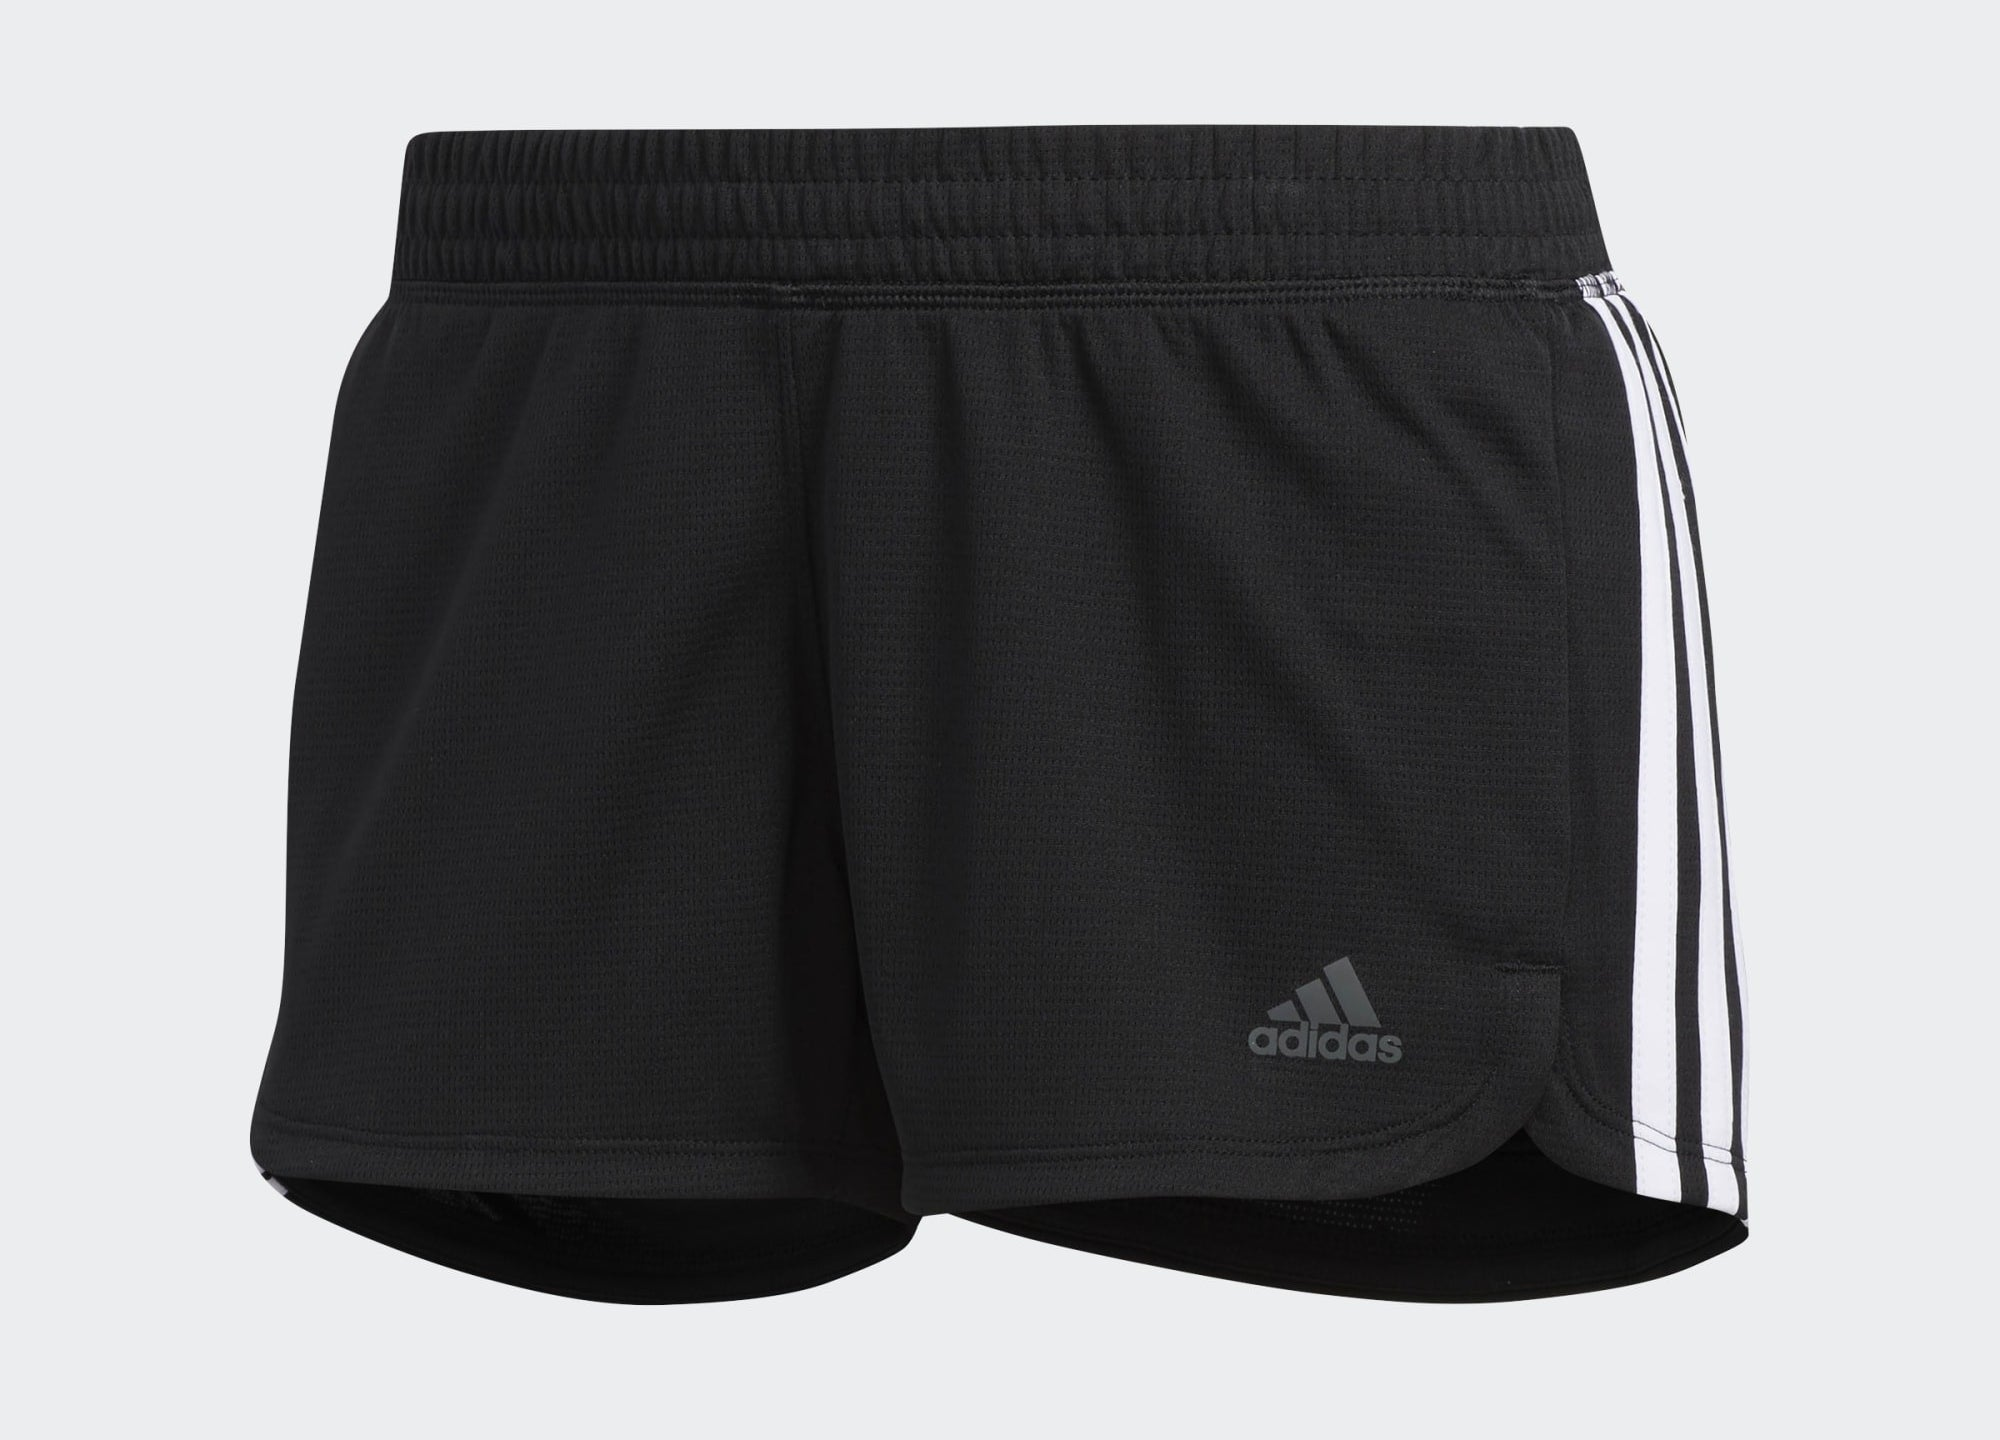 black and white adidas shorts with a short inseam